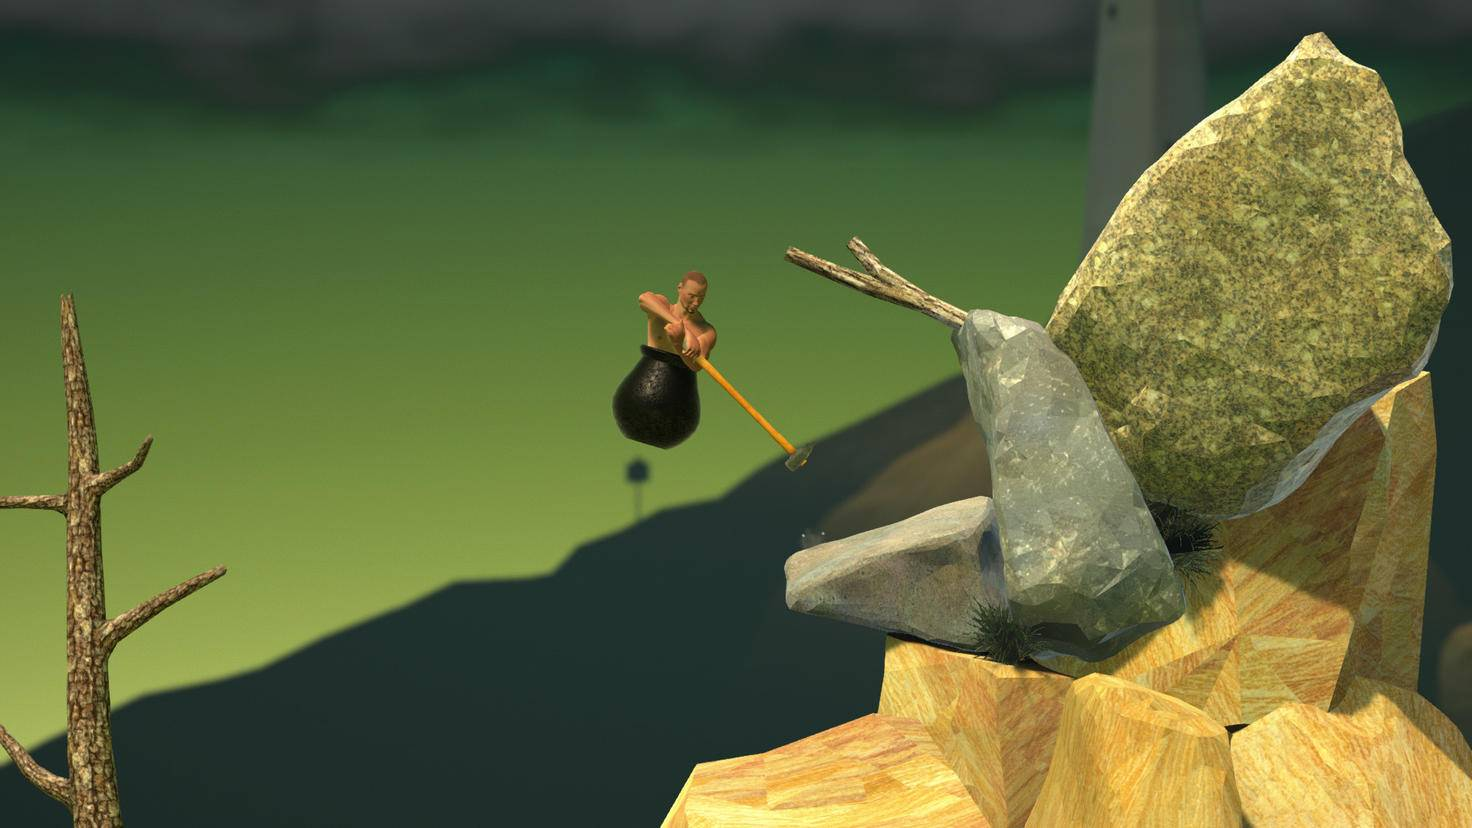 Getting-Over-It-With-Bennett-Foddy